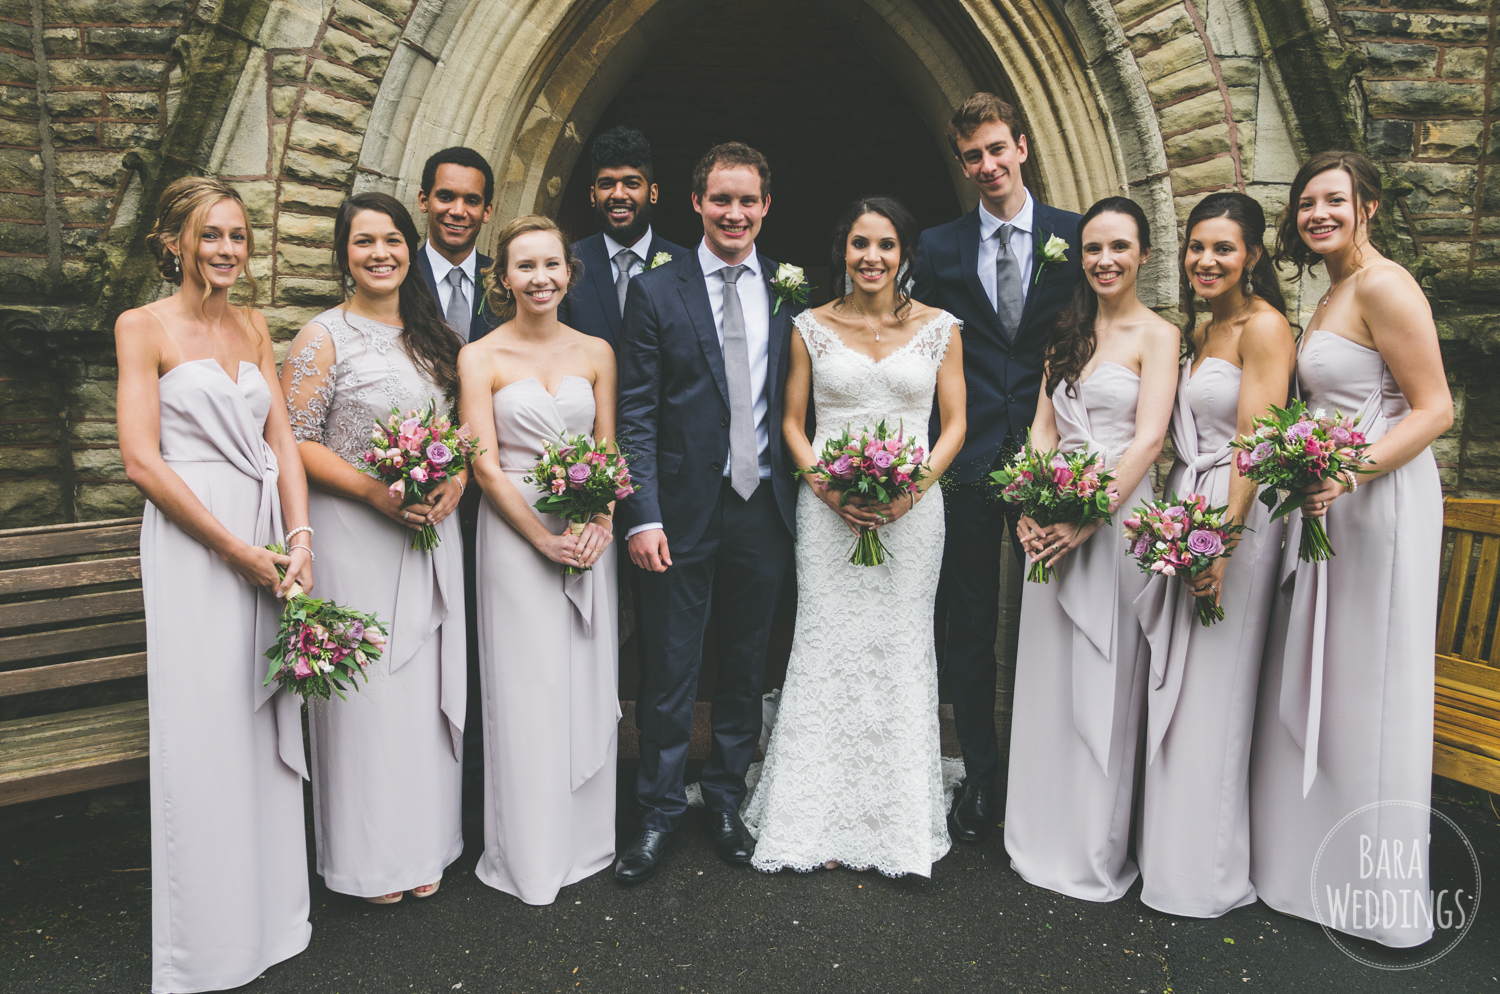 A + H's Wedding Film & Photographs in Rochdale, Manchester